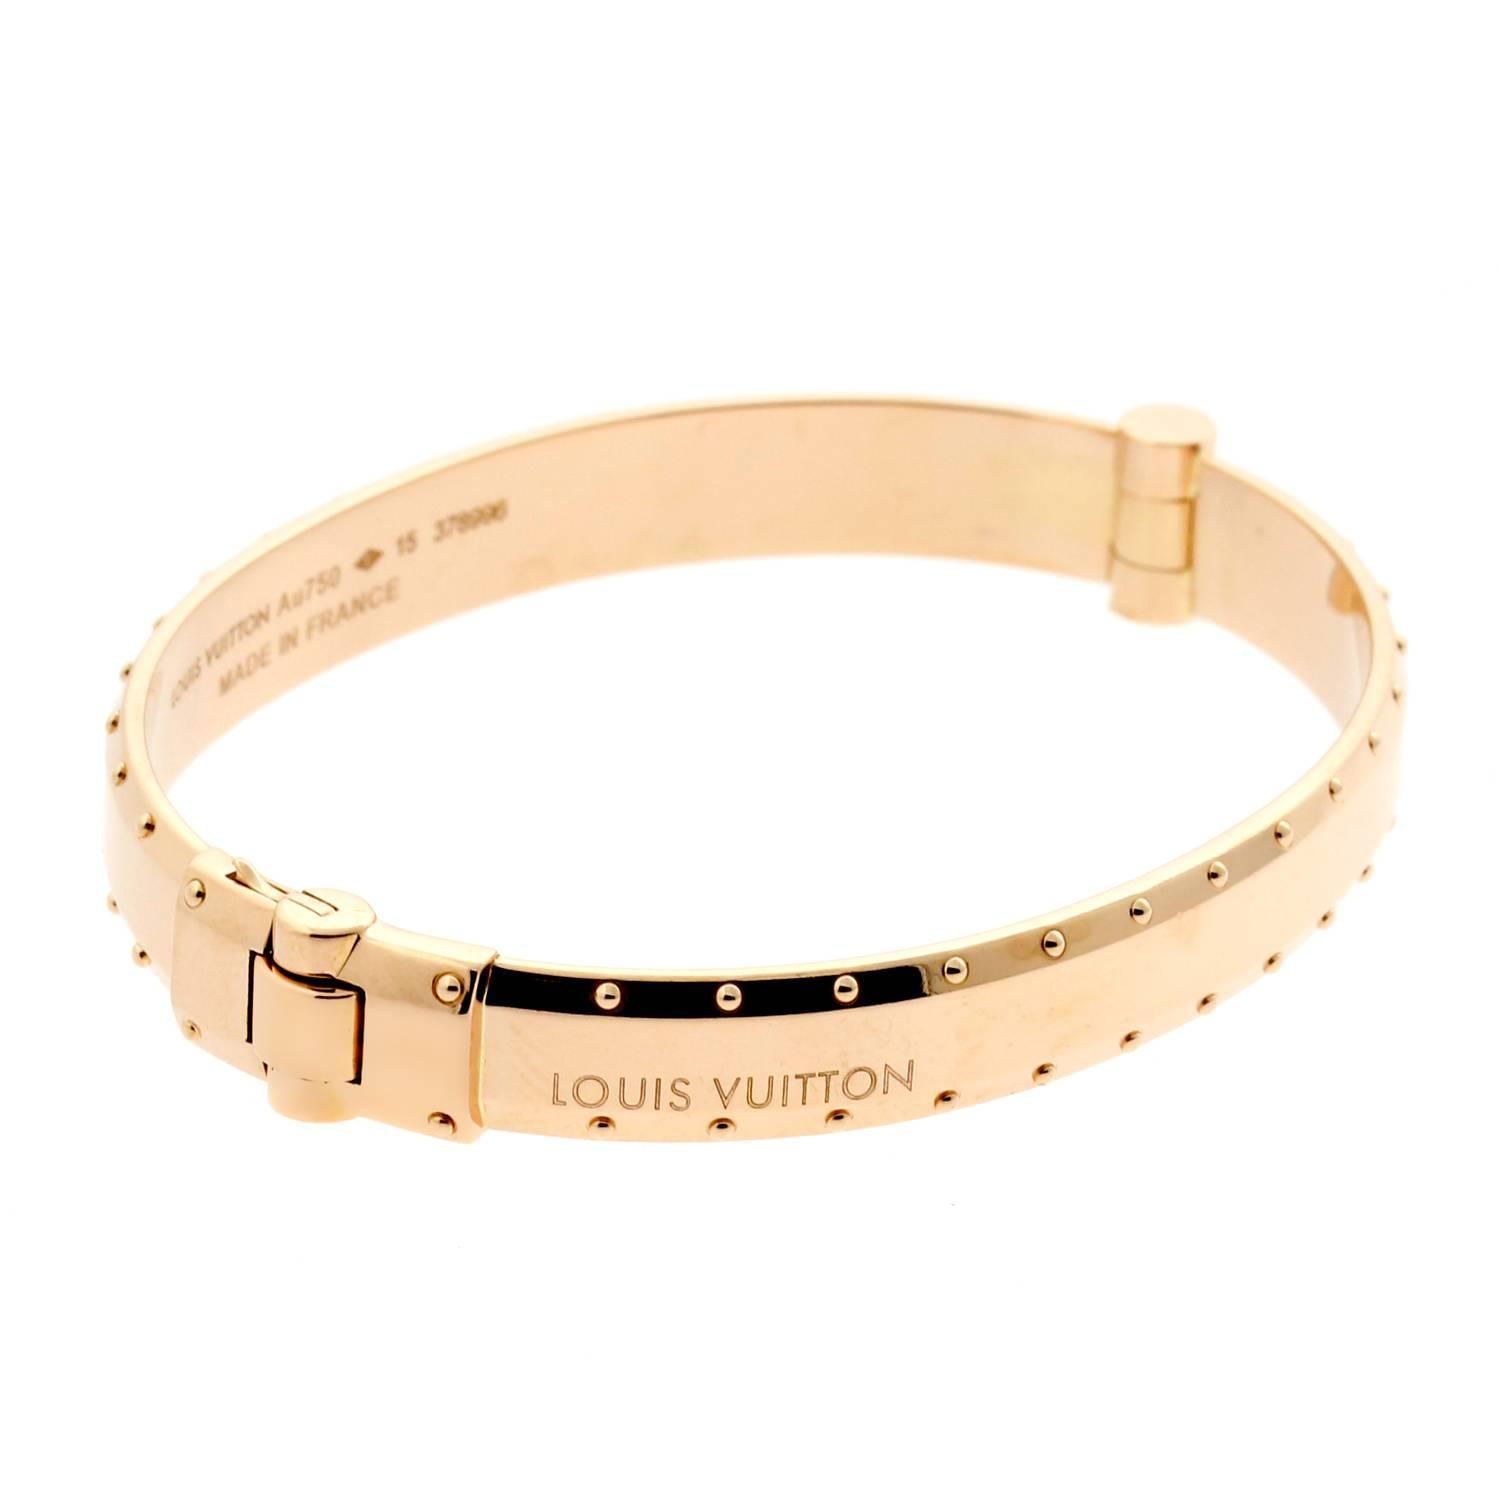 work design gold broad dsc bangles bangle jewellery bracelet